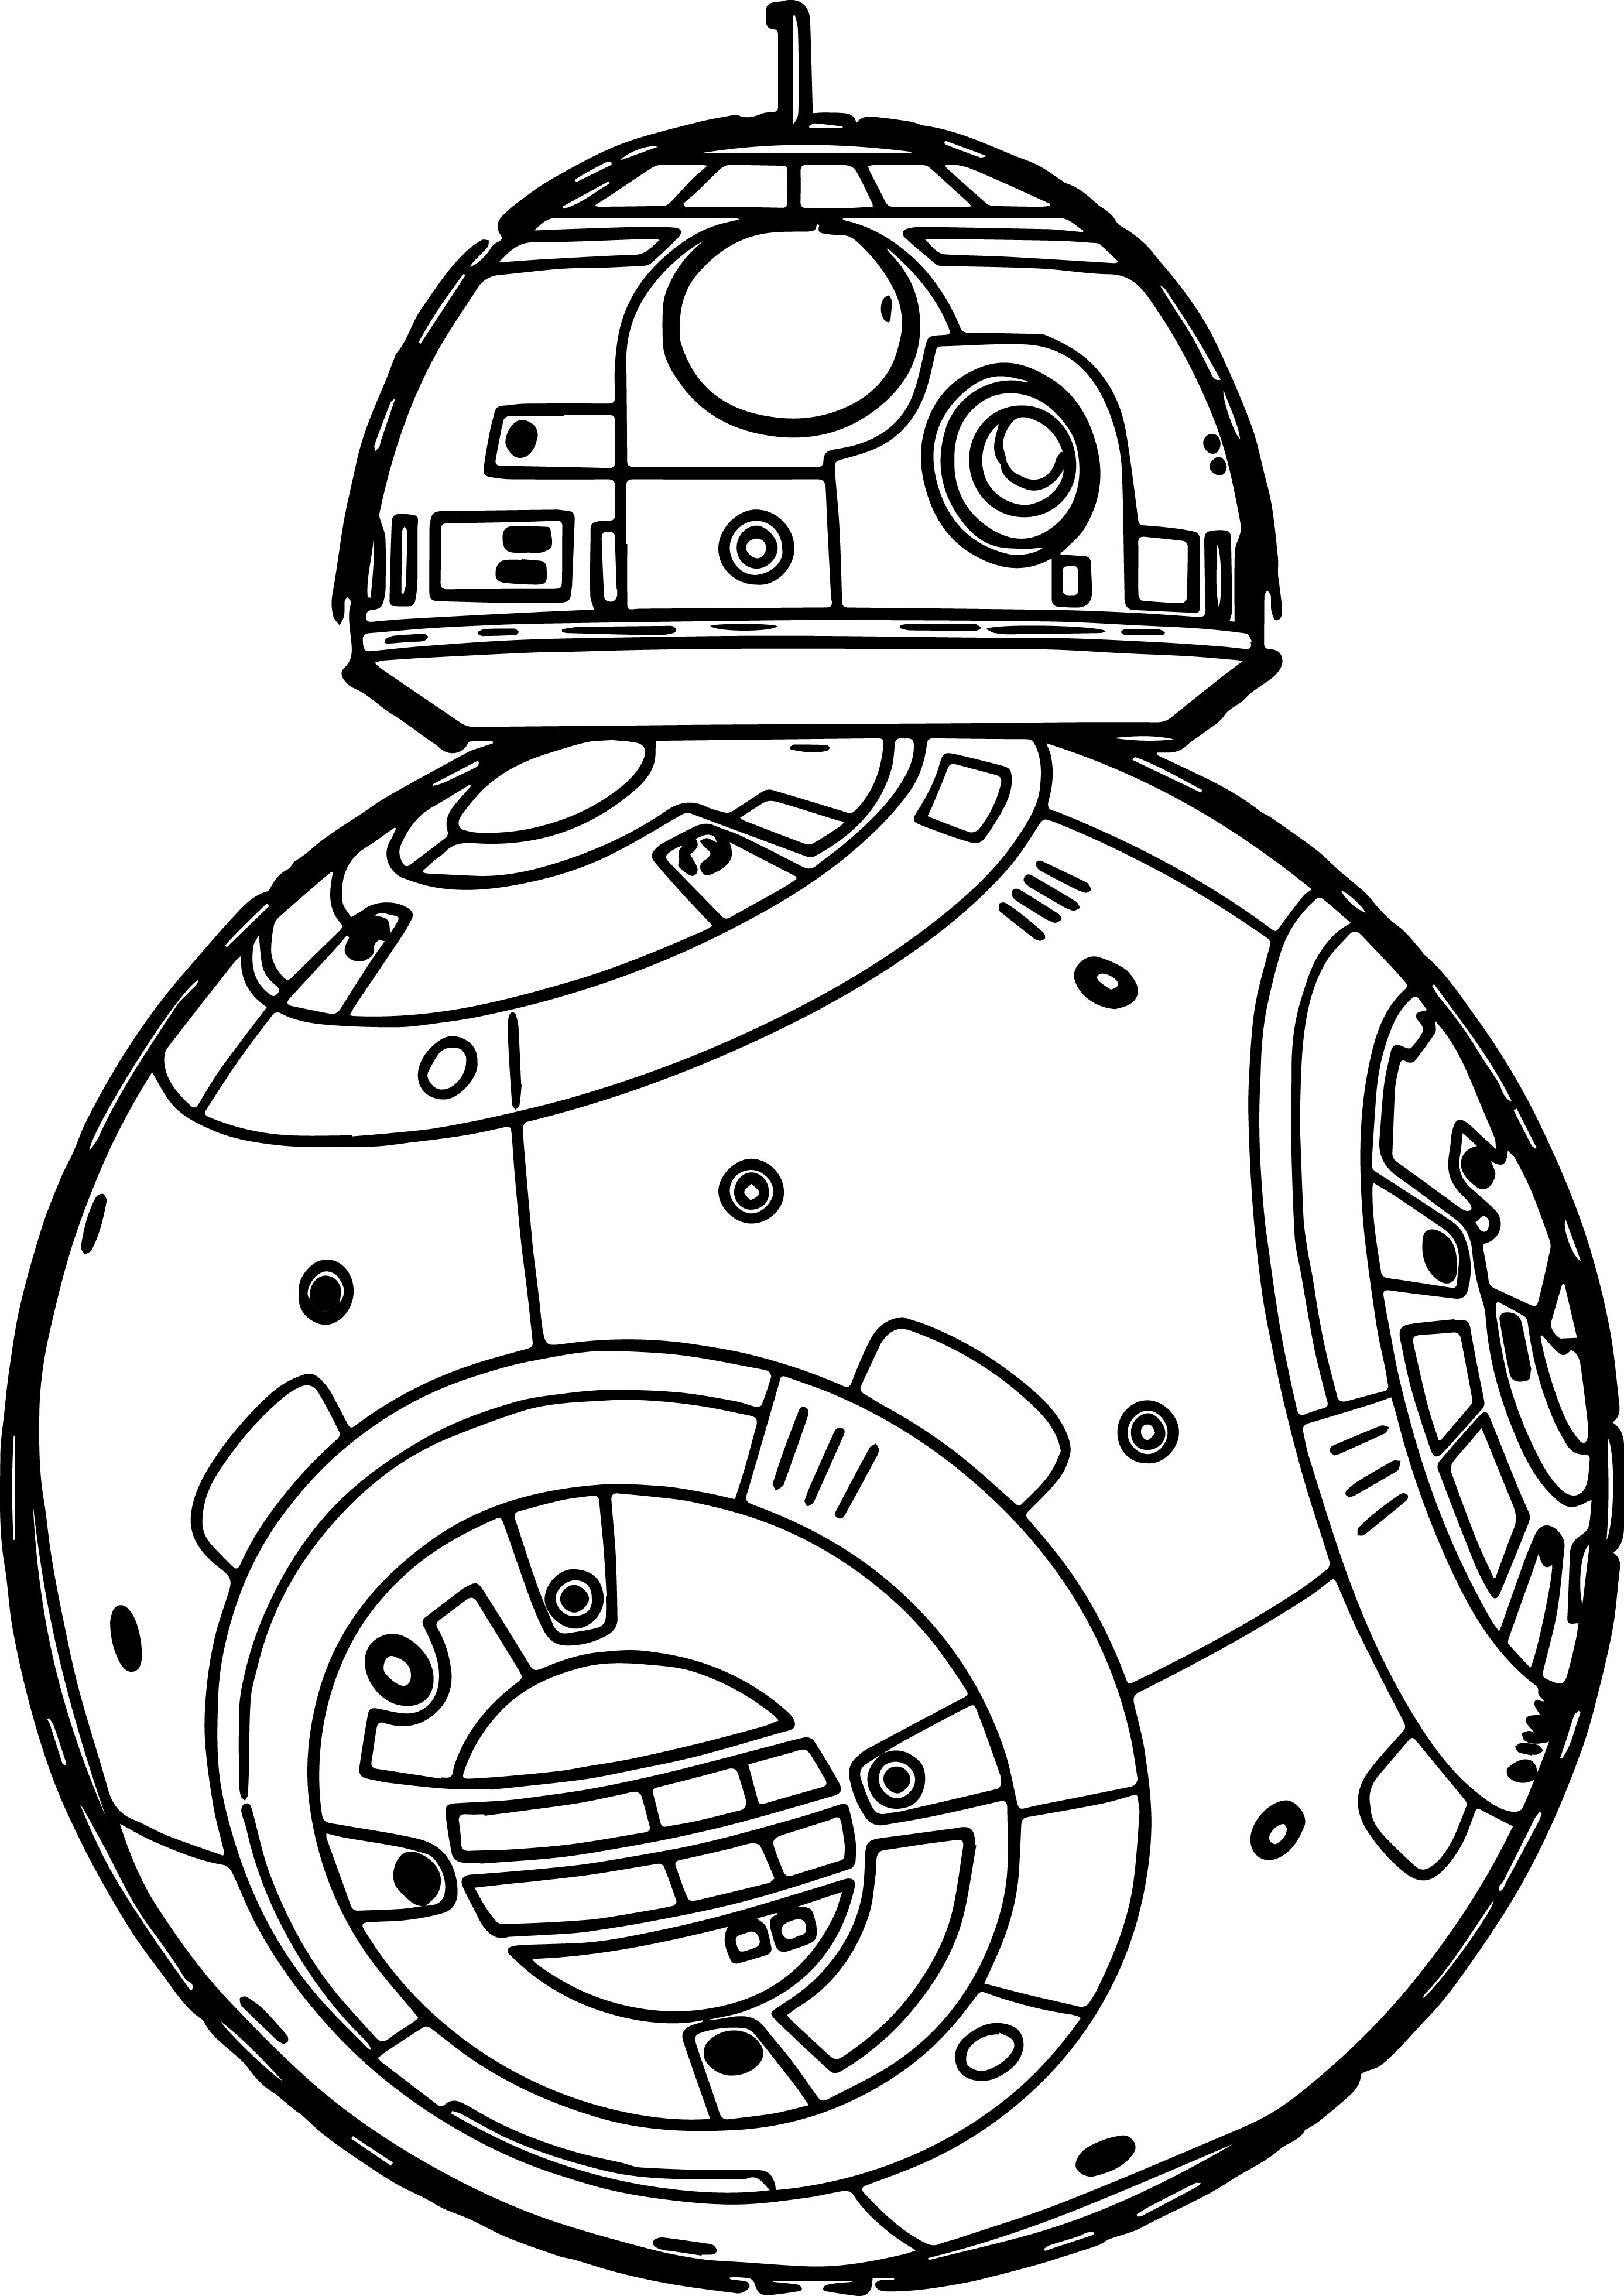 2774x3921 Star Wars The Force Awakens Coloring Pages To Print